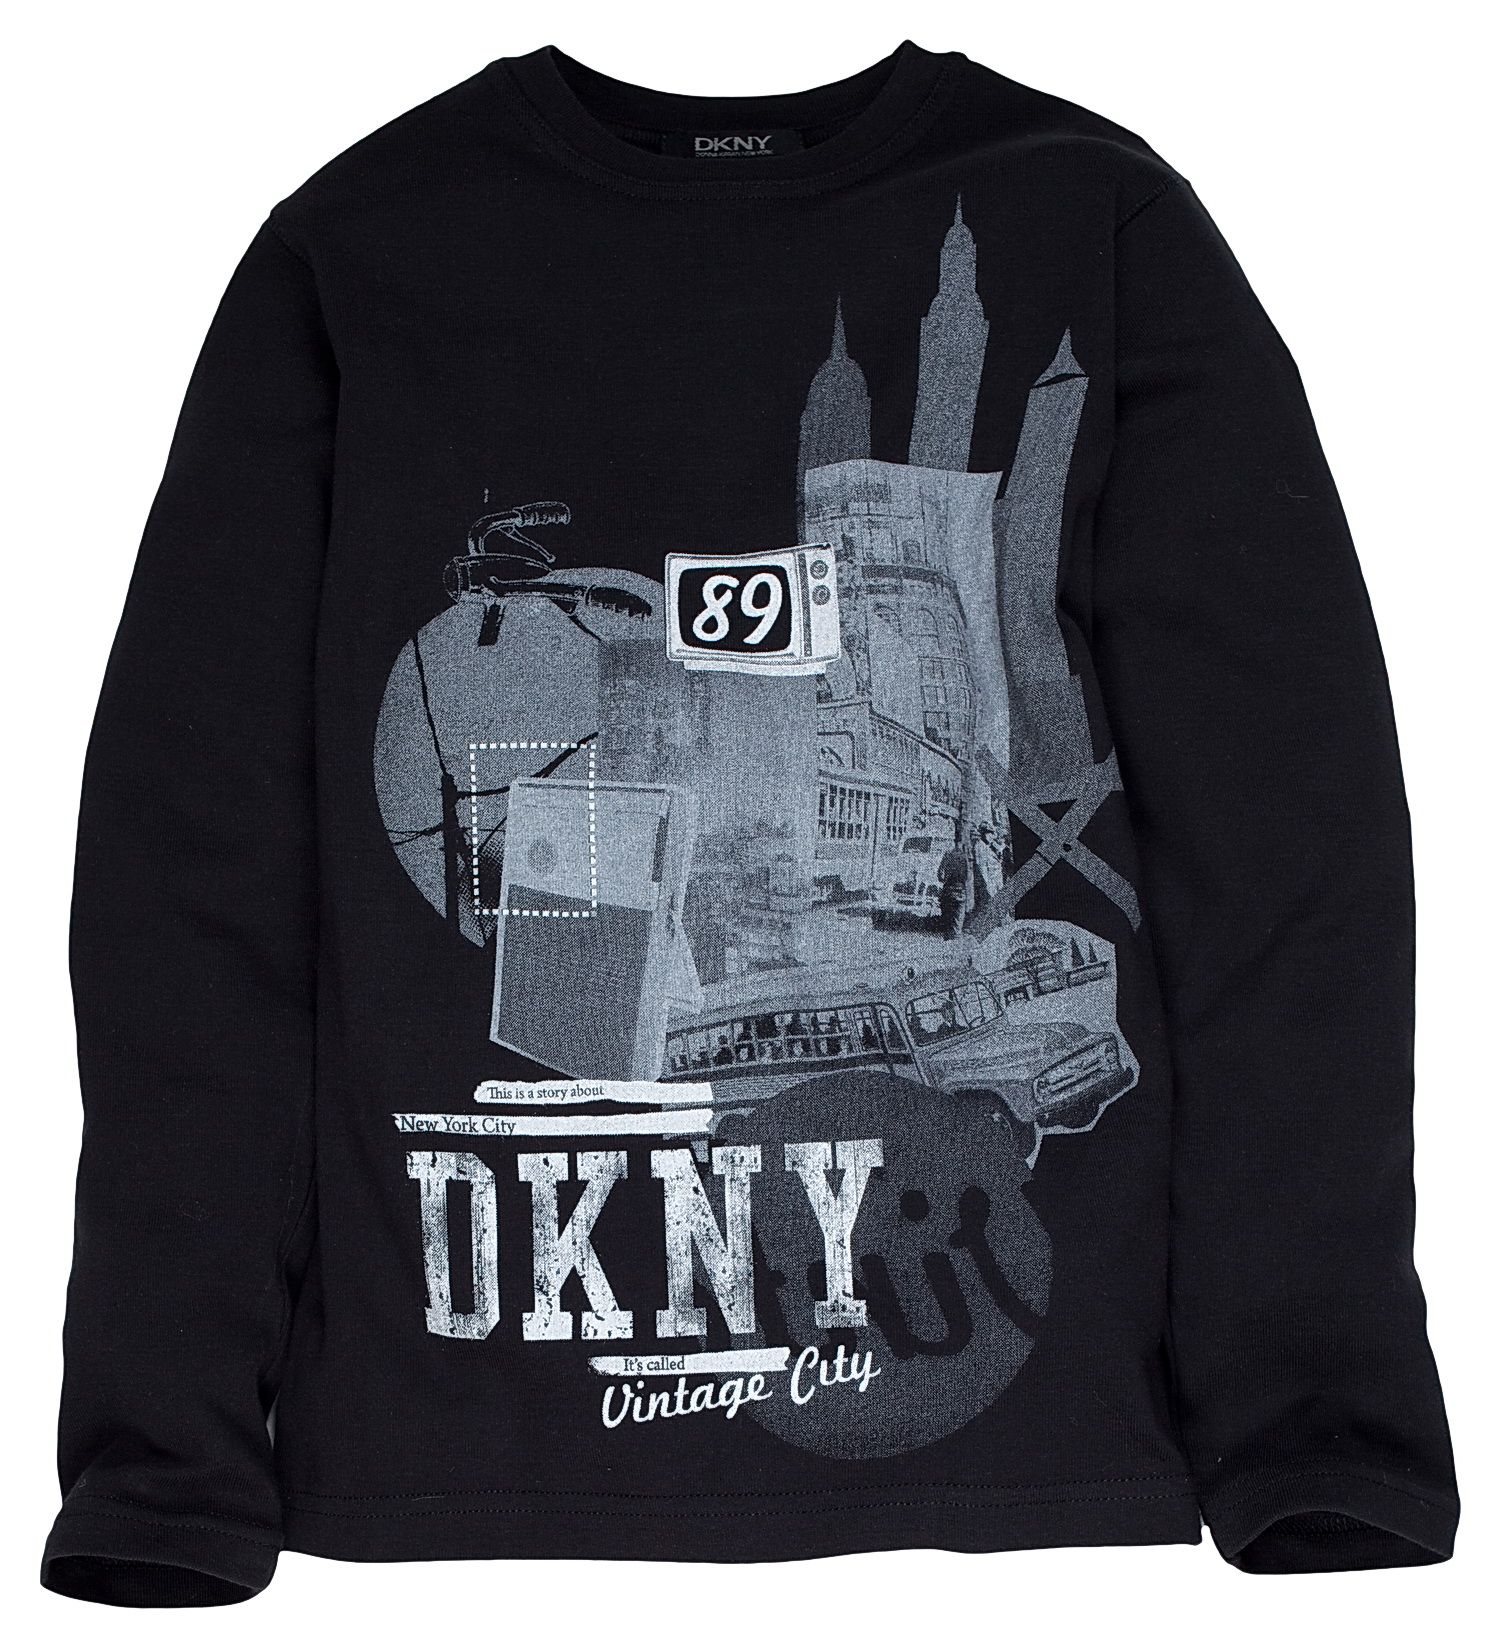 DKNY Childrens DKNY Long sleeved t-shirt, Black product image